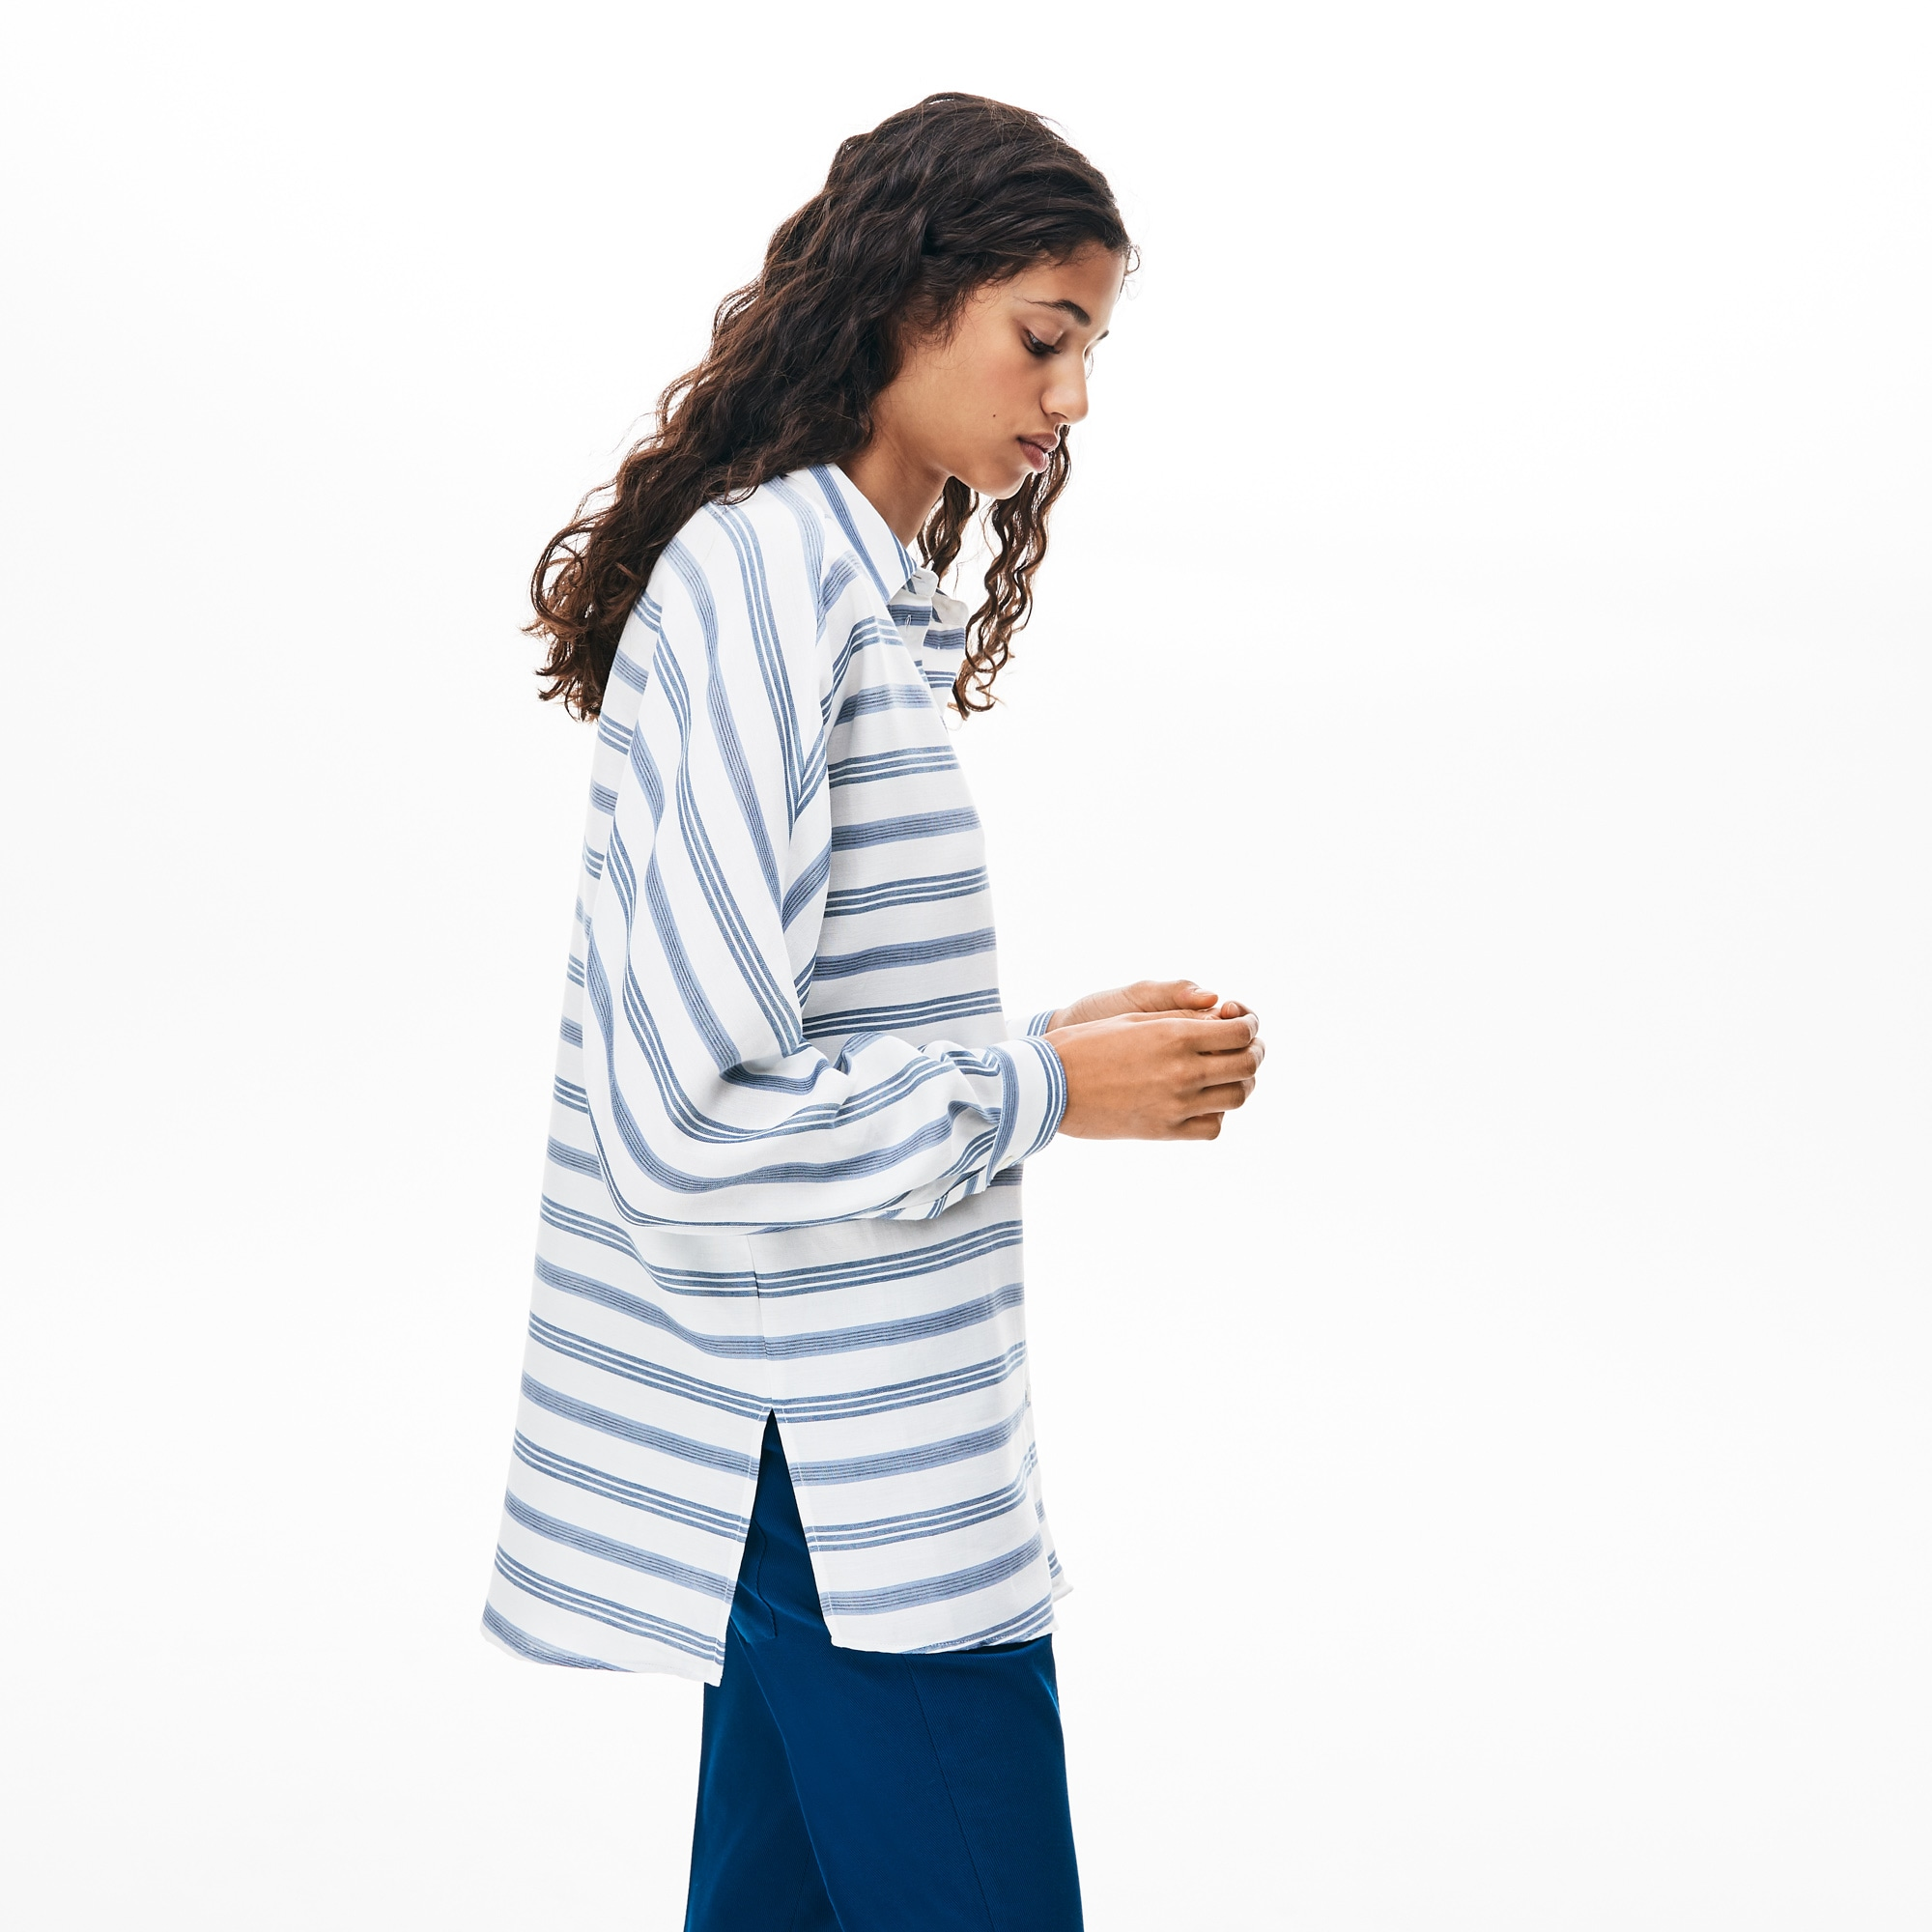 Women's Loose Fit Striped Lightweight Cotton Shirt